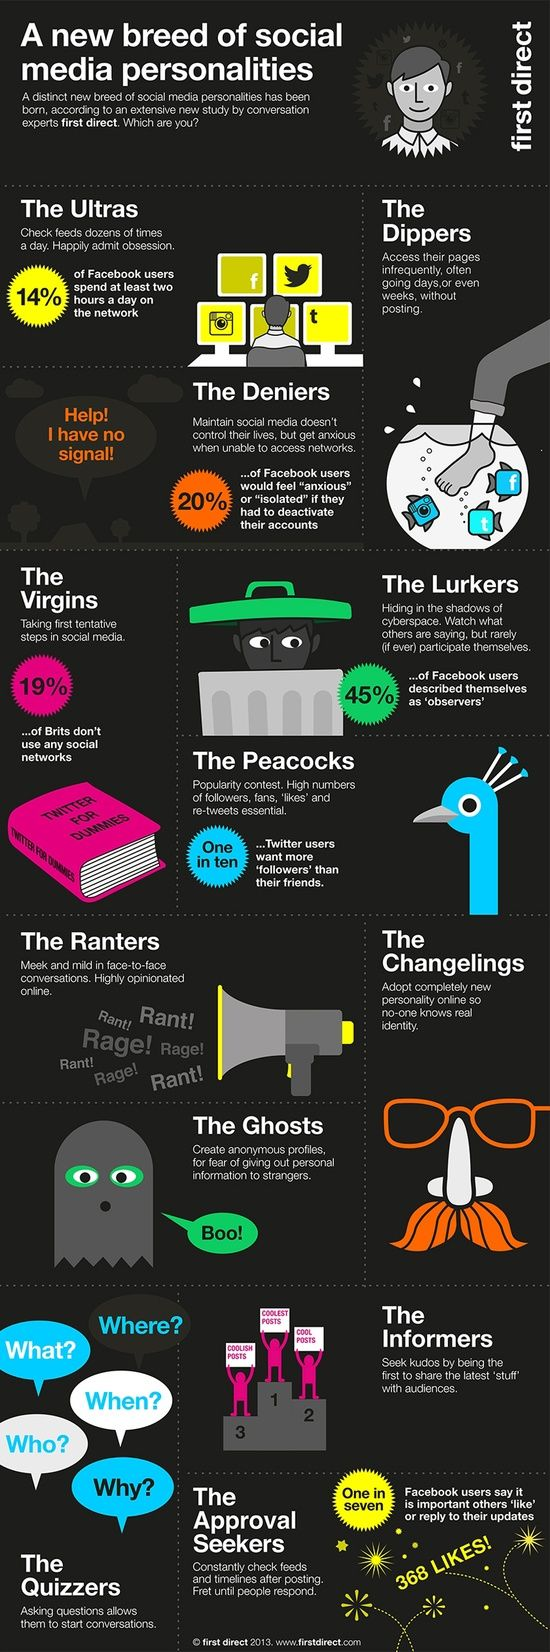 Type of Social Media Users.  Which one are you?  We are definitely The Ultras here at Lab3 Marketing!